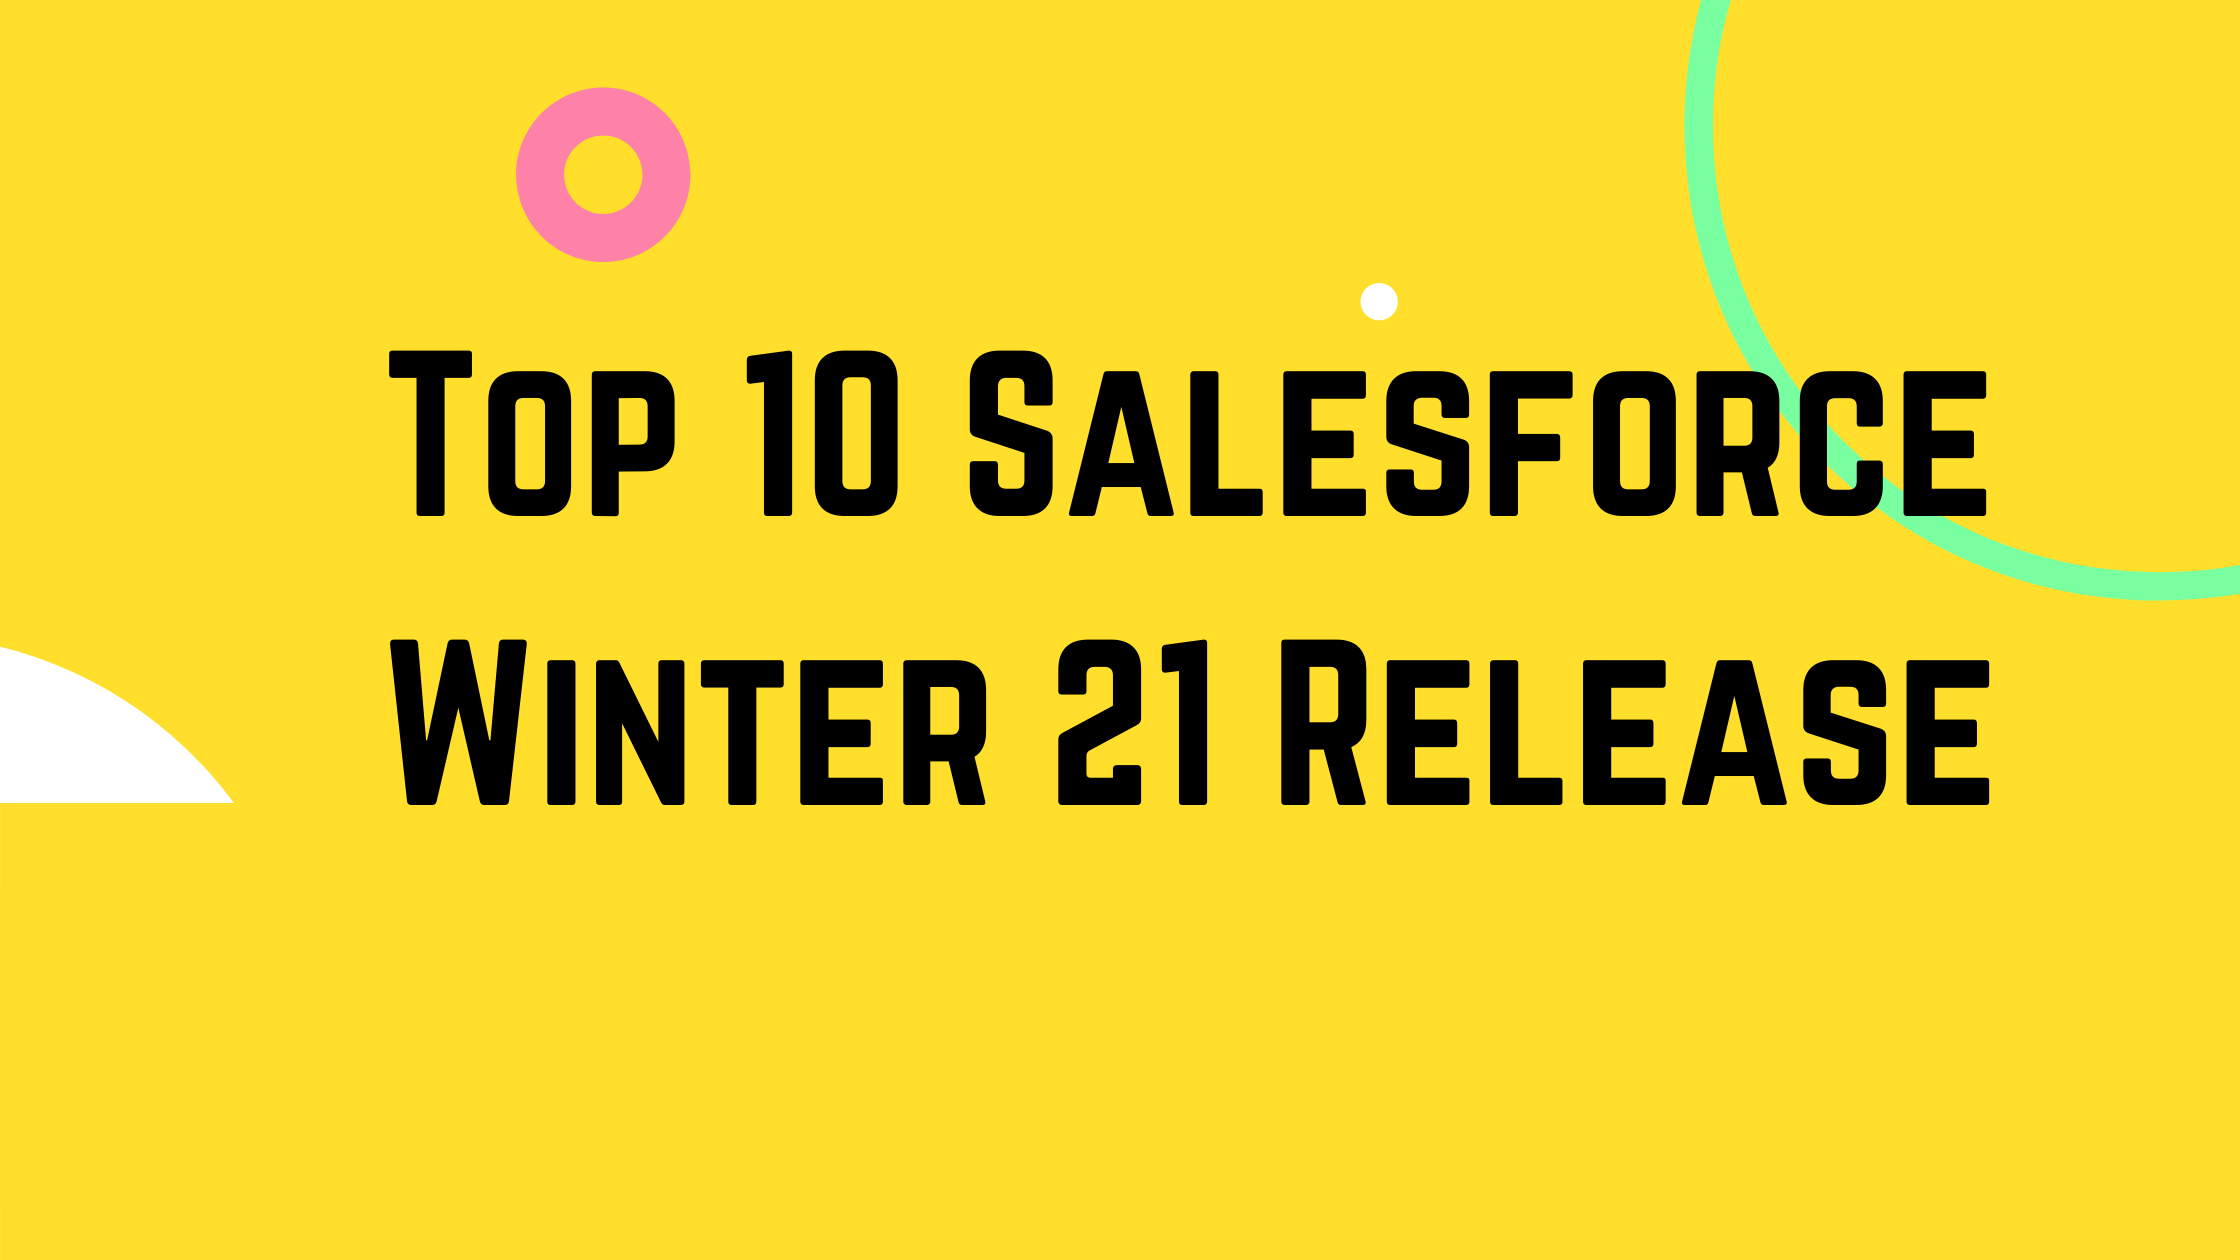 Top 10 Features of Salesforce Winter 21 Release